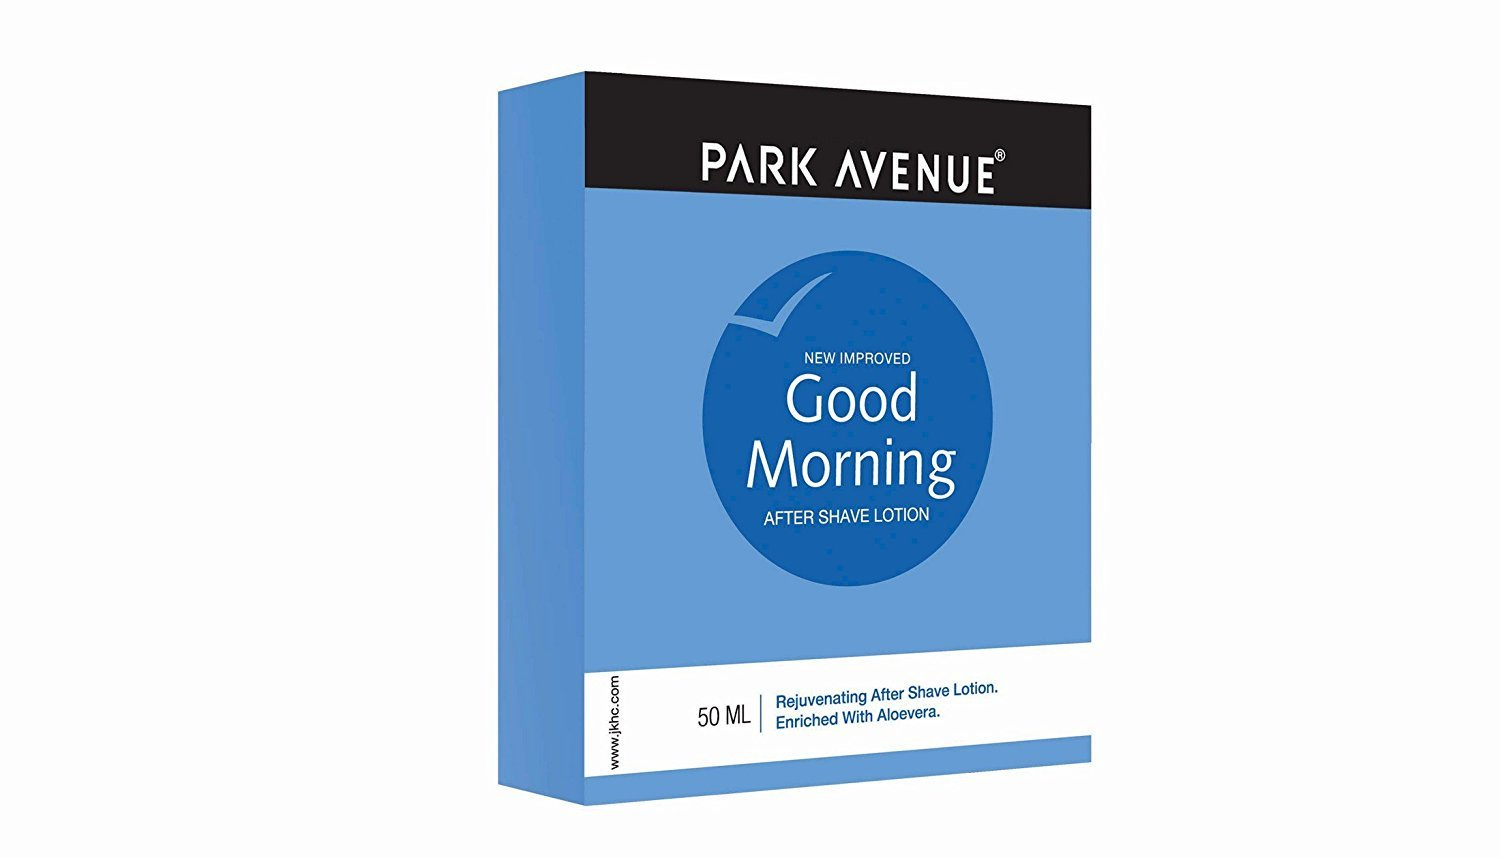 Get Park Avenue Good Morning After Shave Lotion – For men at Rs 75   Amazon Offer